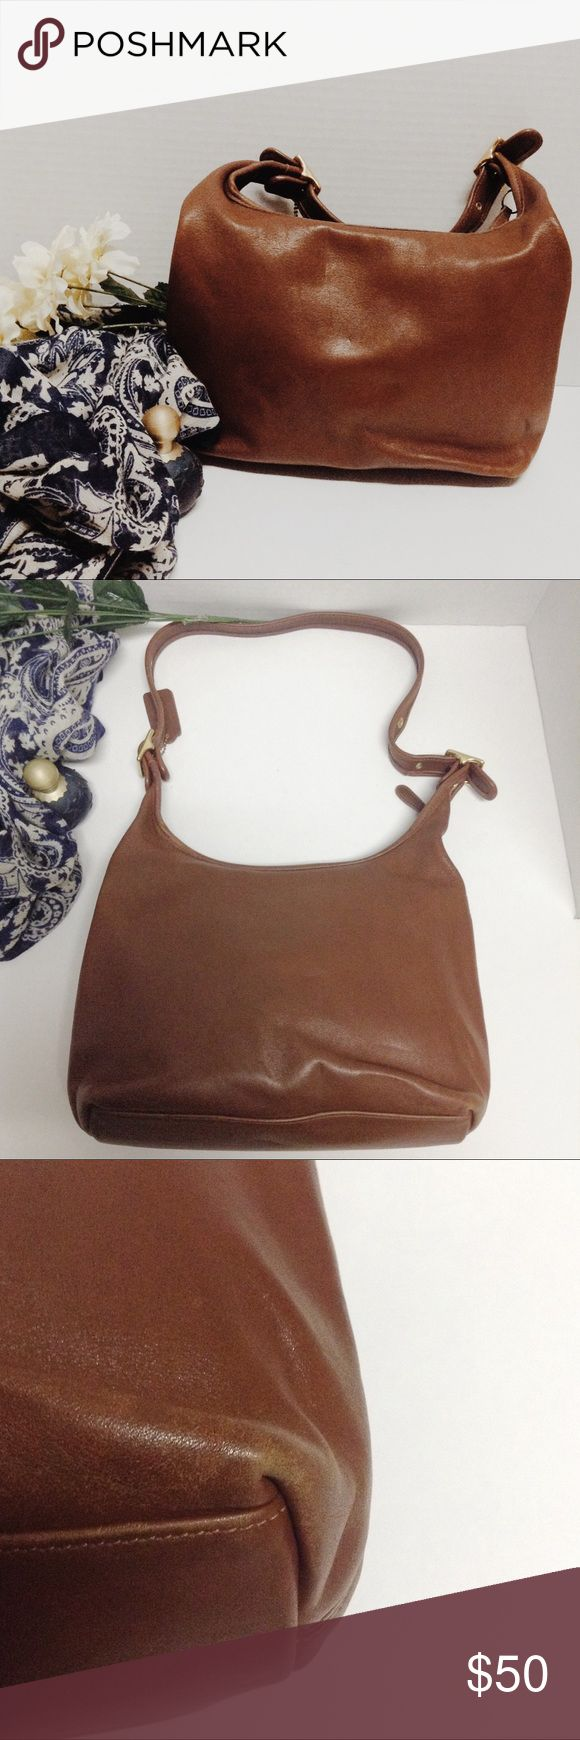 "Vintage Coach legacy tan brown hobo bag Vintage Coach legacy tan brown hobo bag. Good condition. Has some wear on the corners as pictured above. Super soft quality leather. Measurements: height:12"" width:4.5"" length: 11"" length from top of strap to bottom:23"" Coach Bags Hobos"